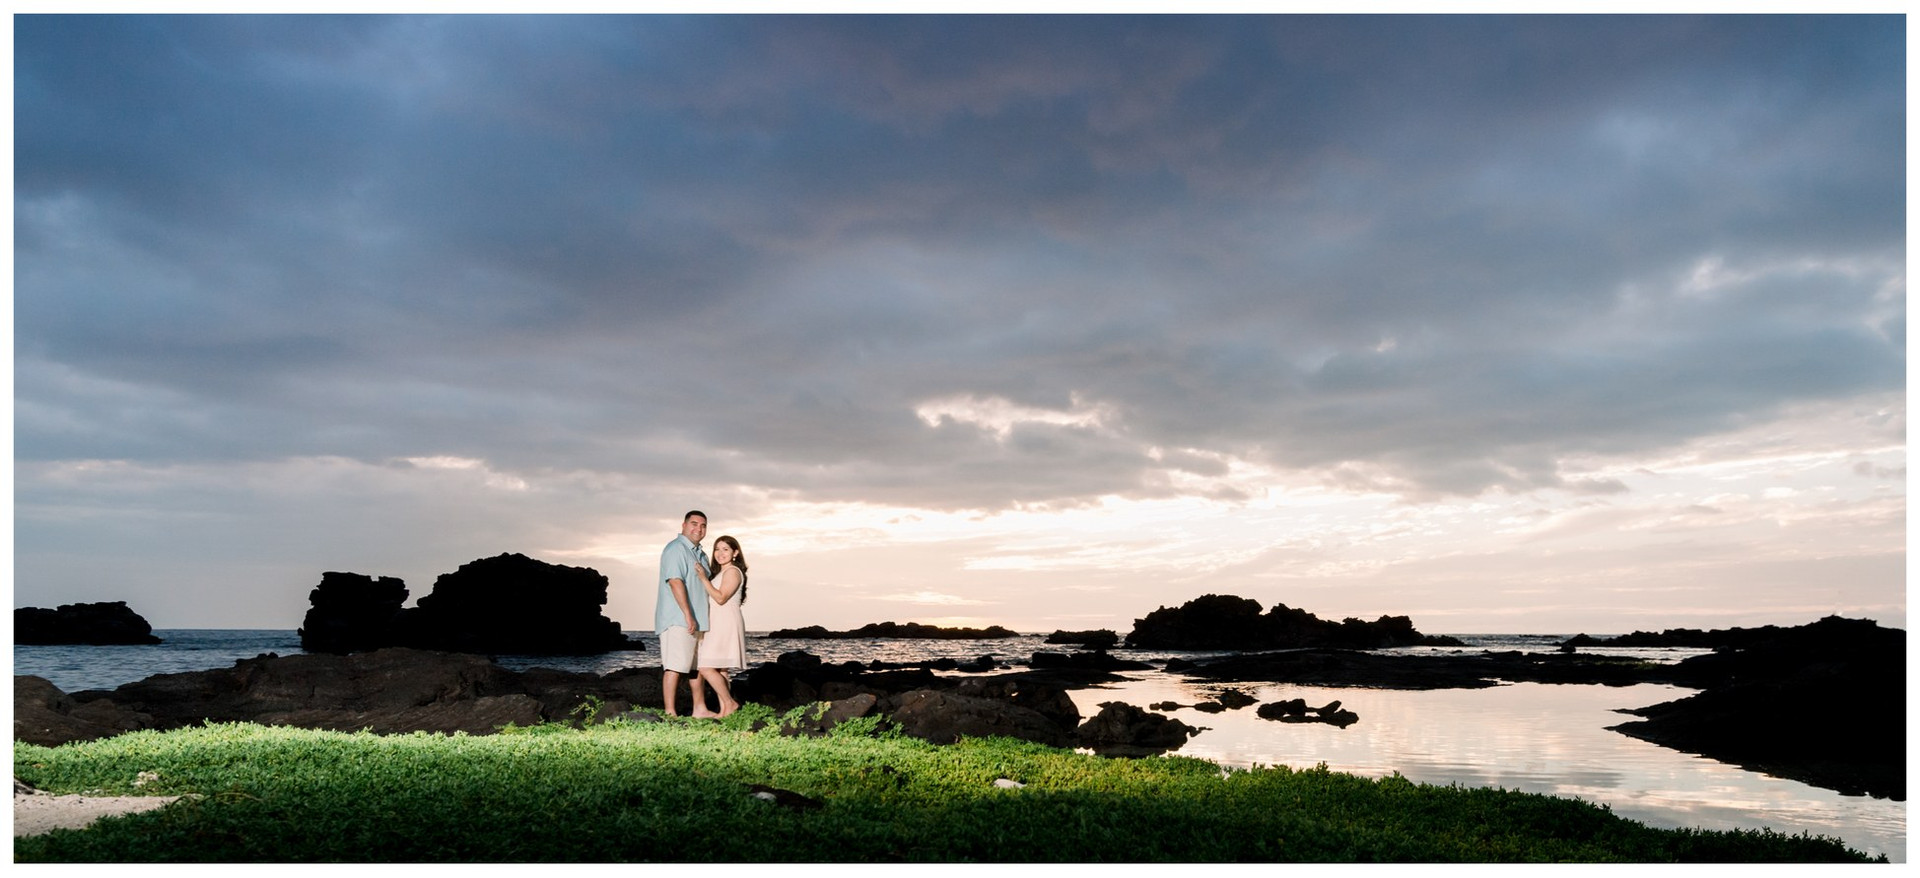 Hawaii Engagement Photography.jpg